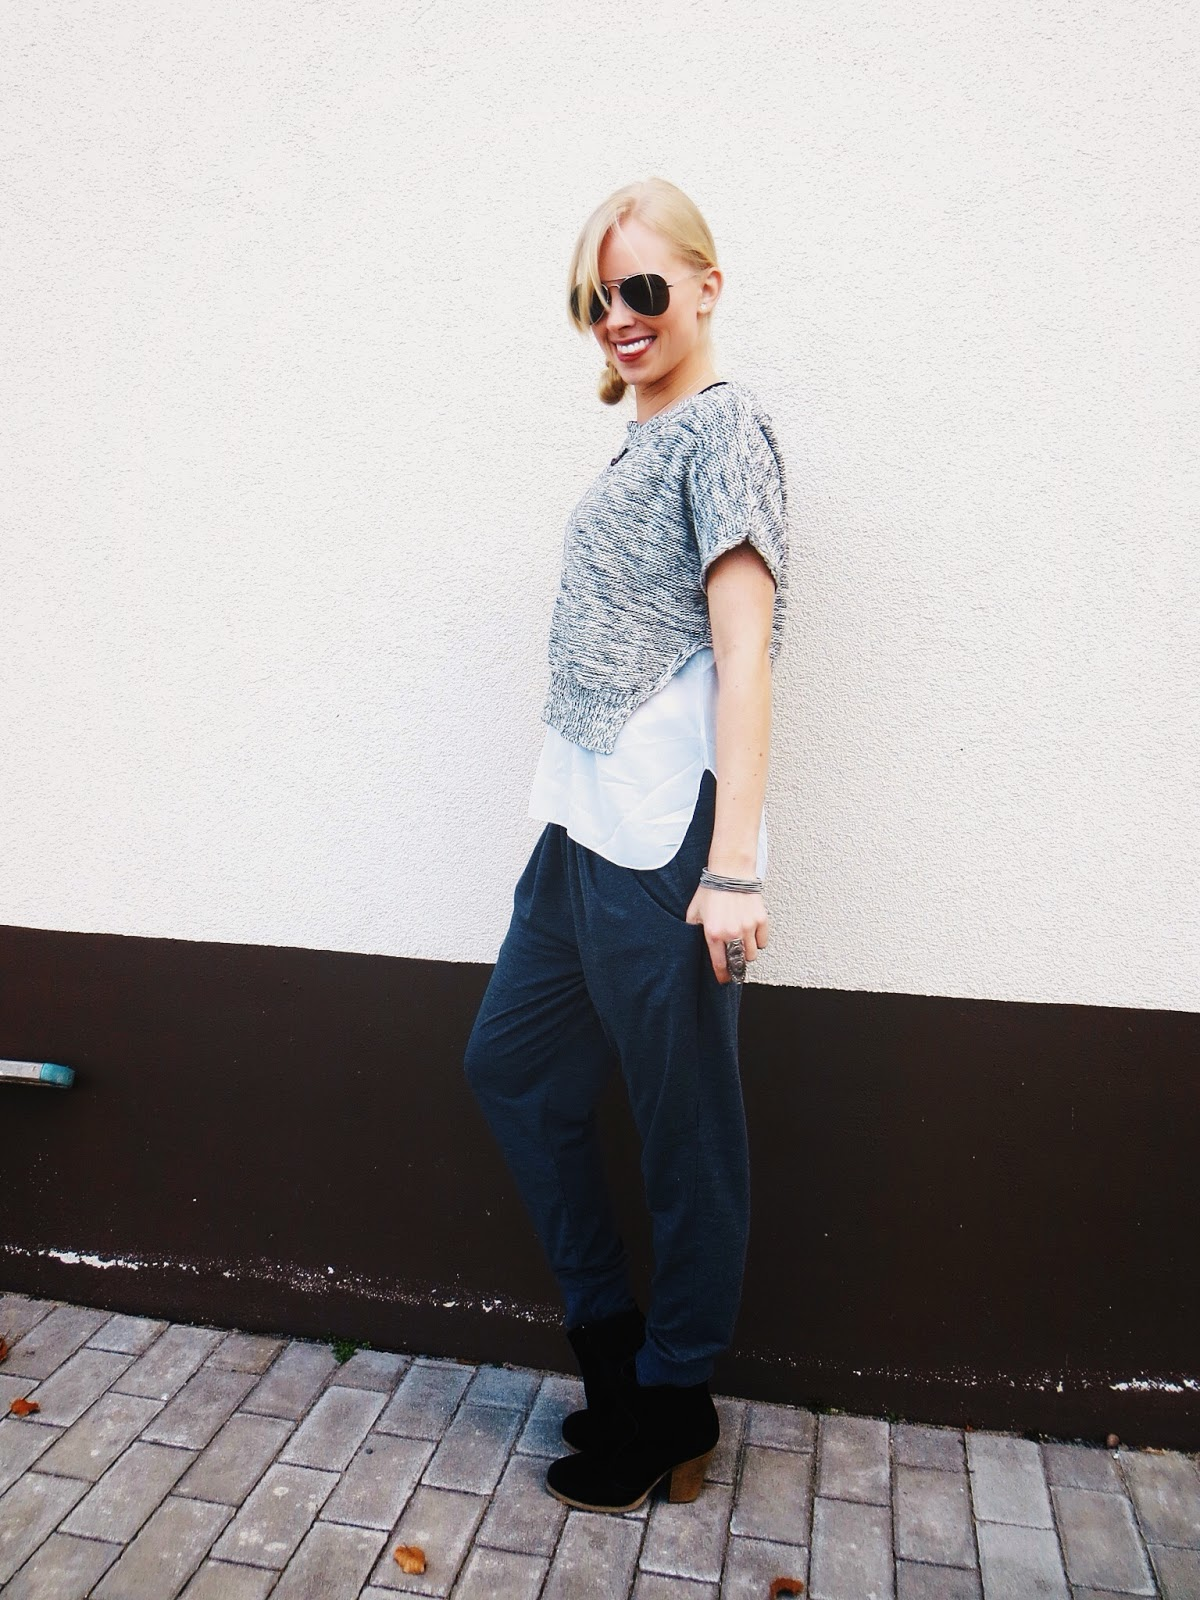 the quarrier tourmaline necklace, deb hi low sweater, amy waltz designs crescent moon ring, freyrs sunglasses, harem pants, casual outfit, shades of grey, monochrome